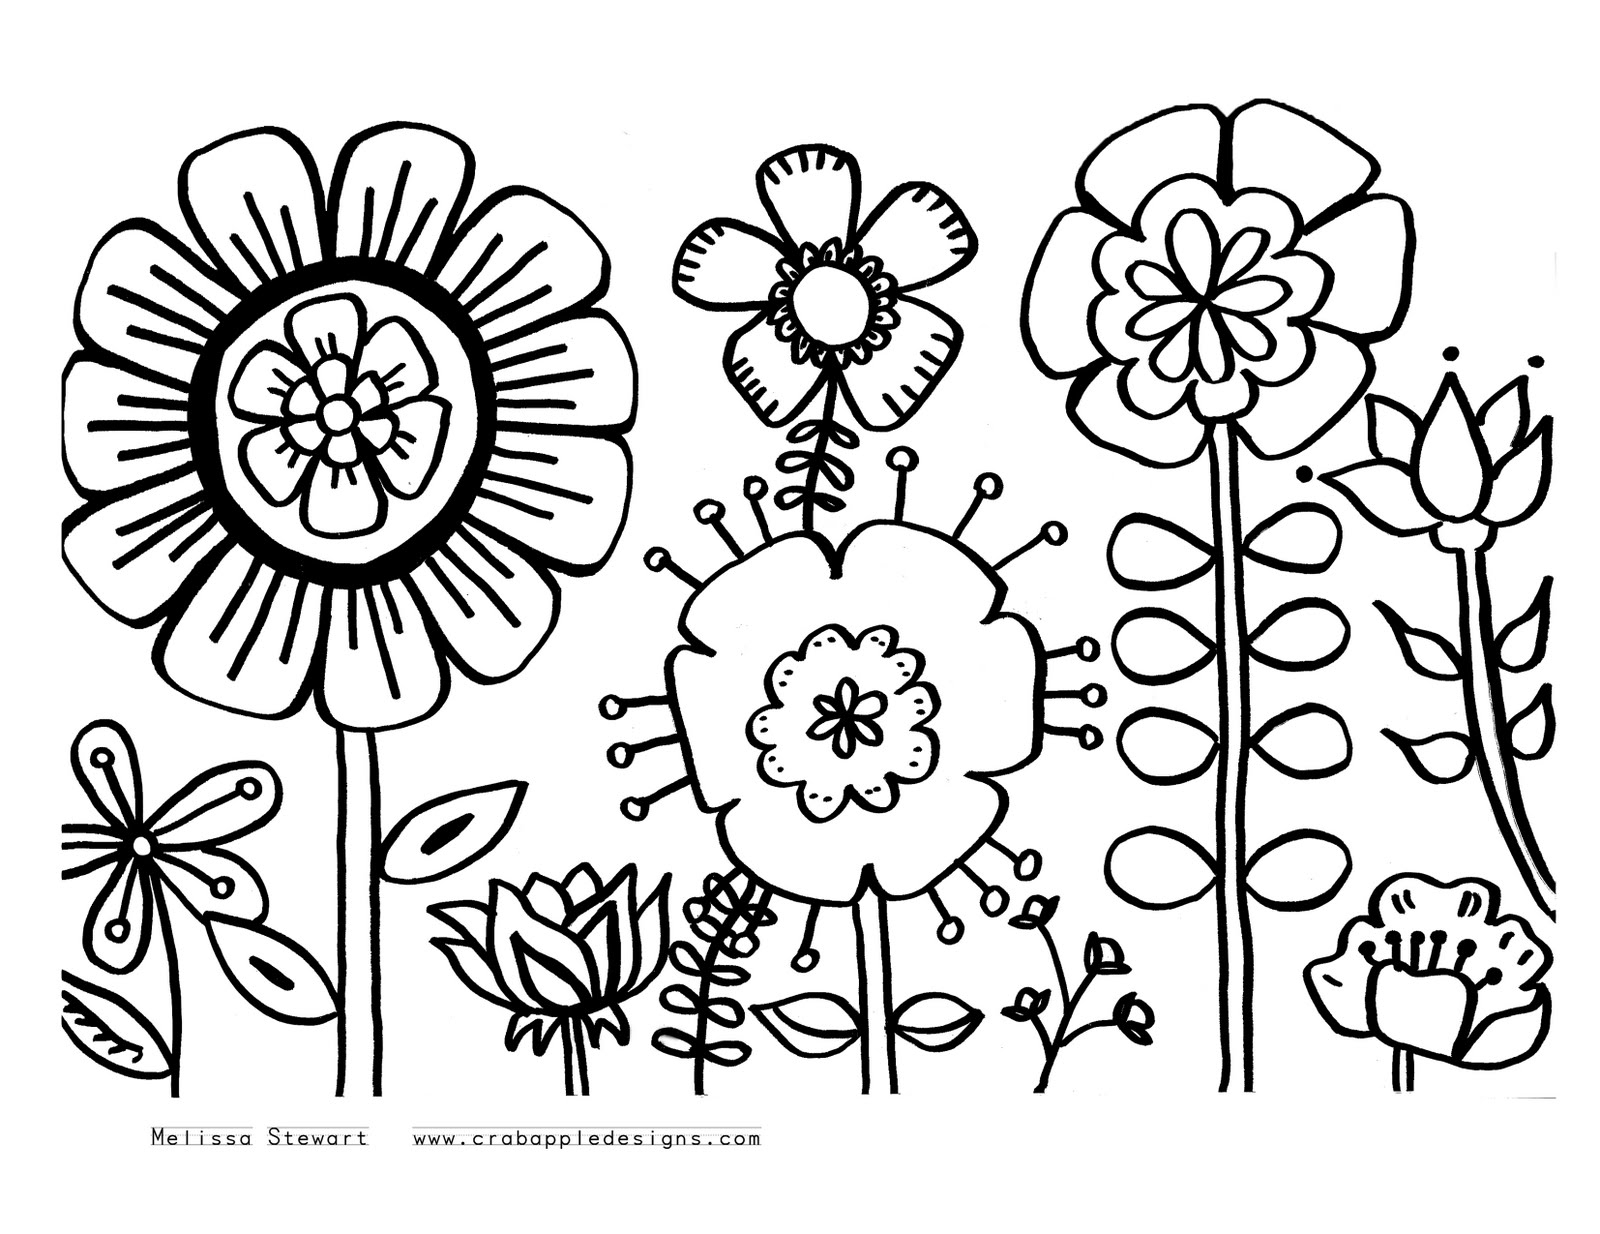 Free Coloring Pages Hearts Free Coloring Pages Hearts And Flowers At Getdrawings Free For